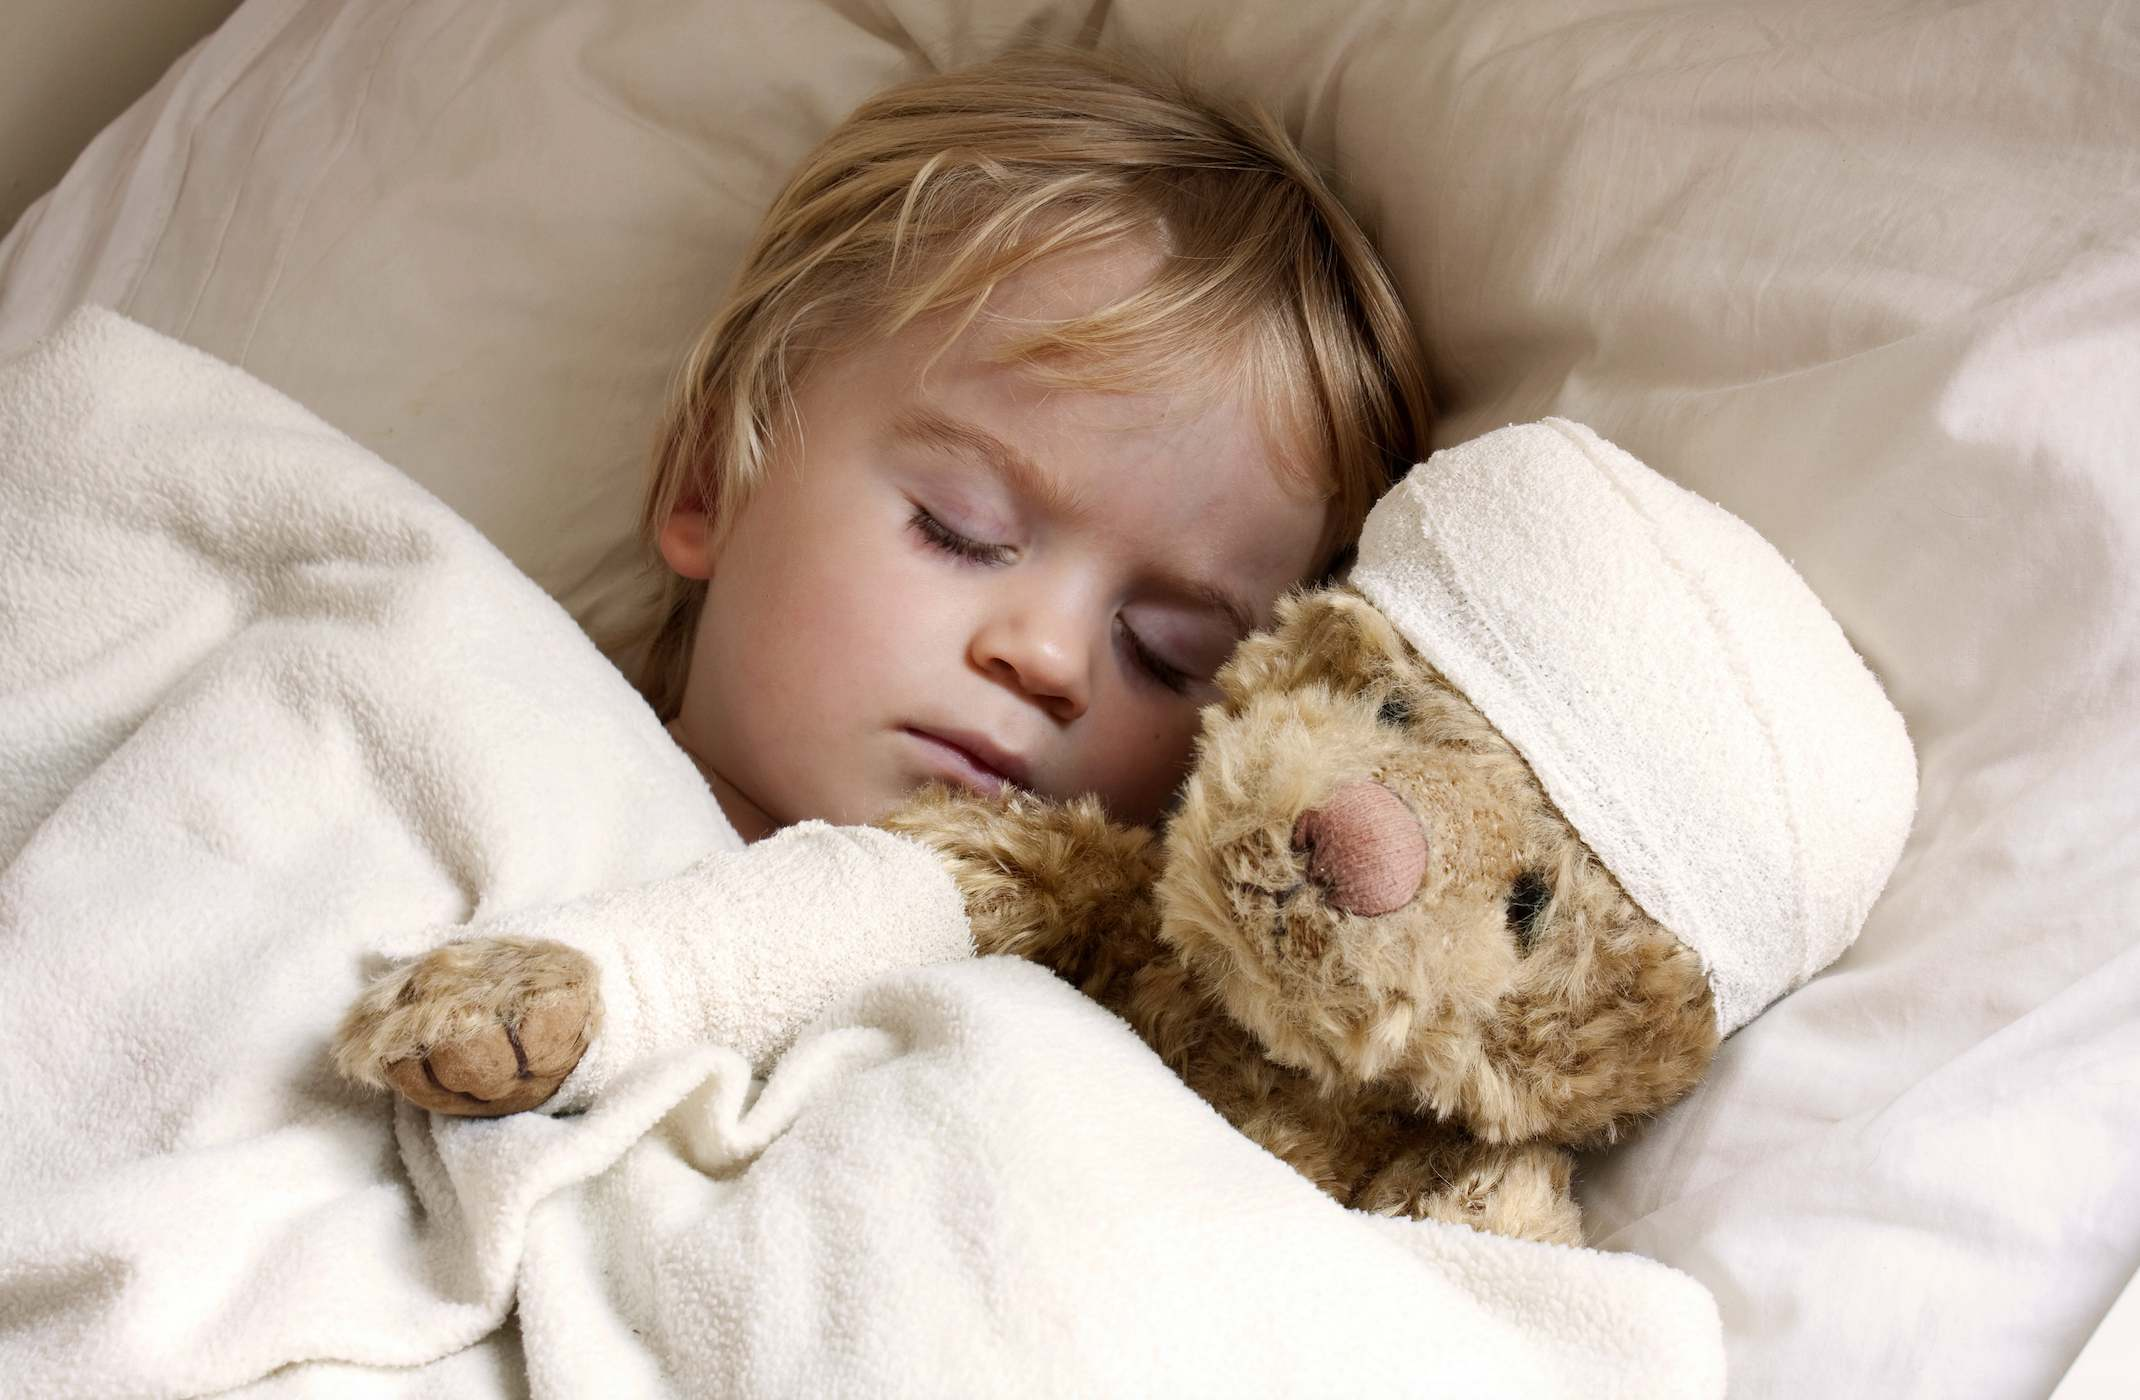 Child in bed with teddybear